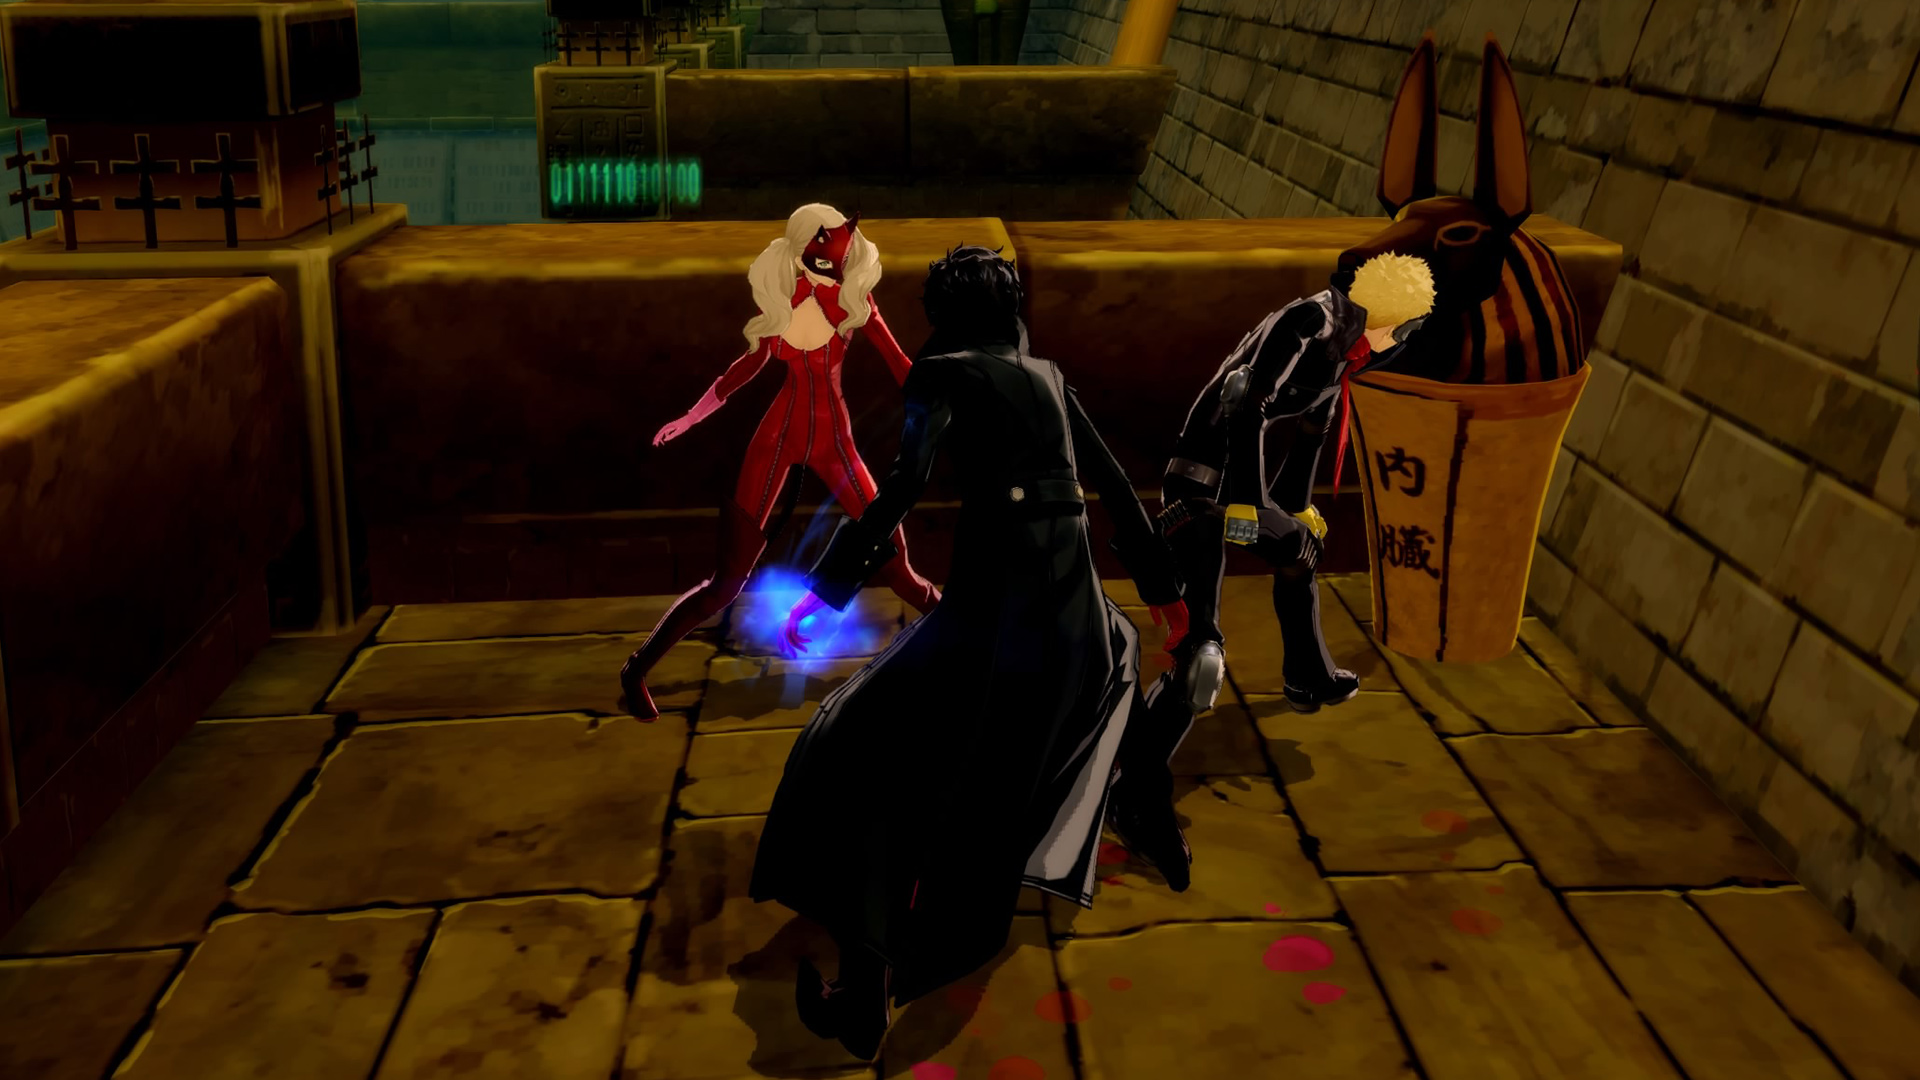 Persona 5 Royal Futaba's Palace Will Seeds of Wrath locations guide